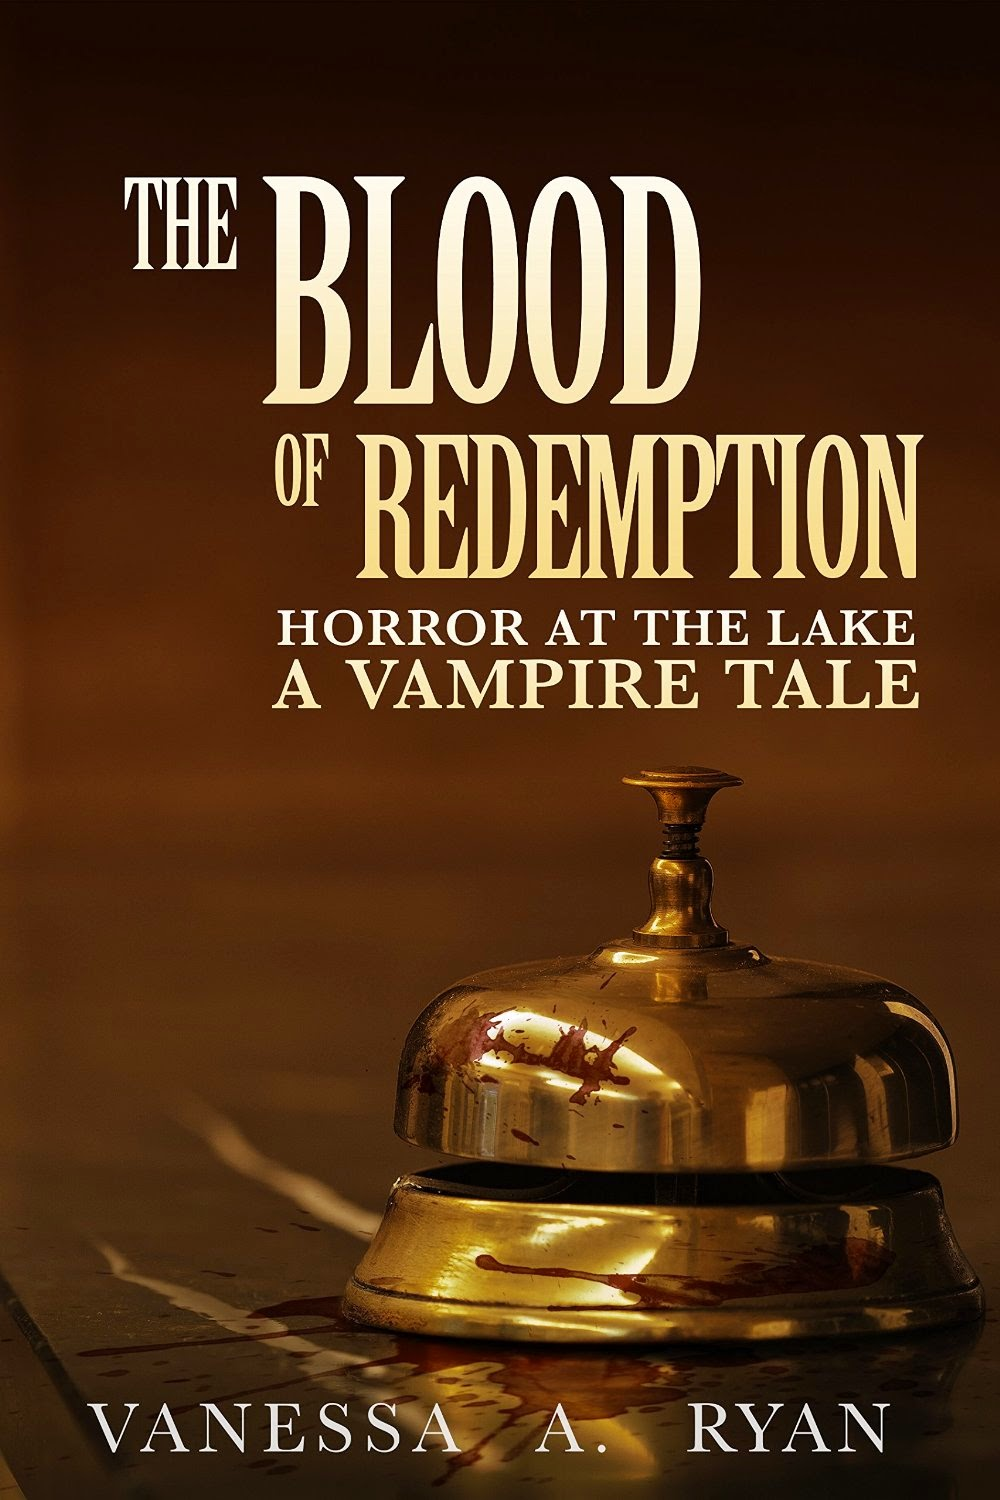 http://www.amazon.com/Blood-Redemption-Horror-Lake-Vampire-ebook/dp/B00V5H1ZHE/ref=sr_1_1?s=books&ie=UTF8&qid